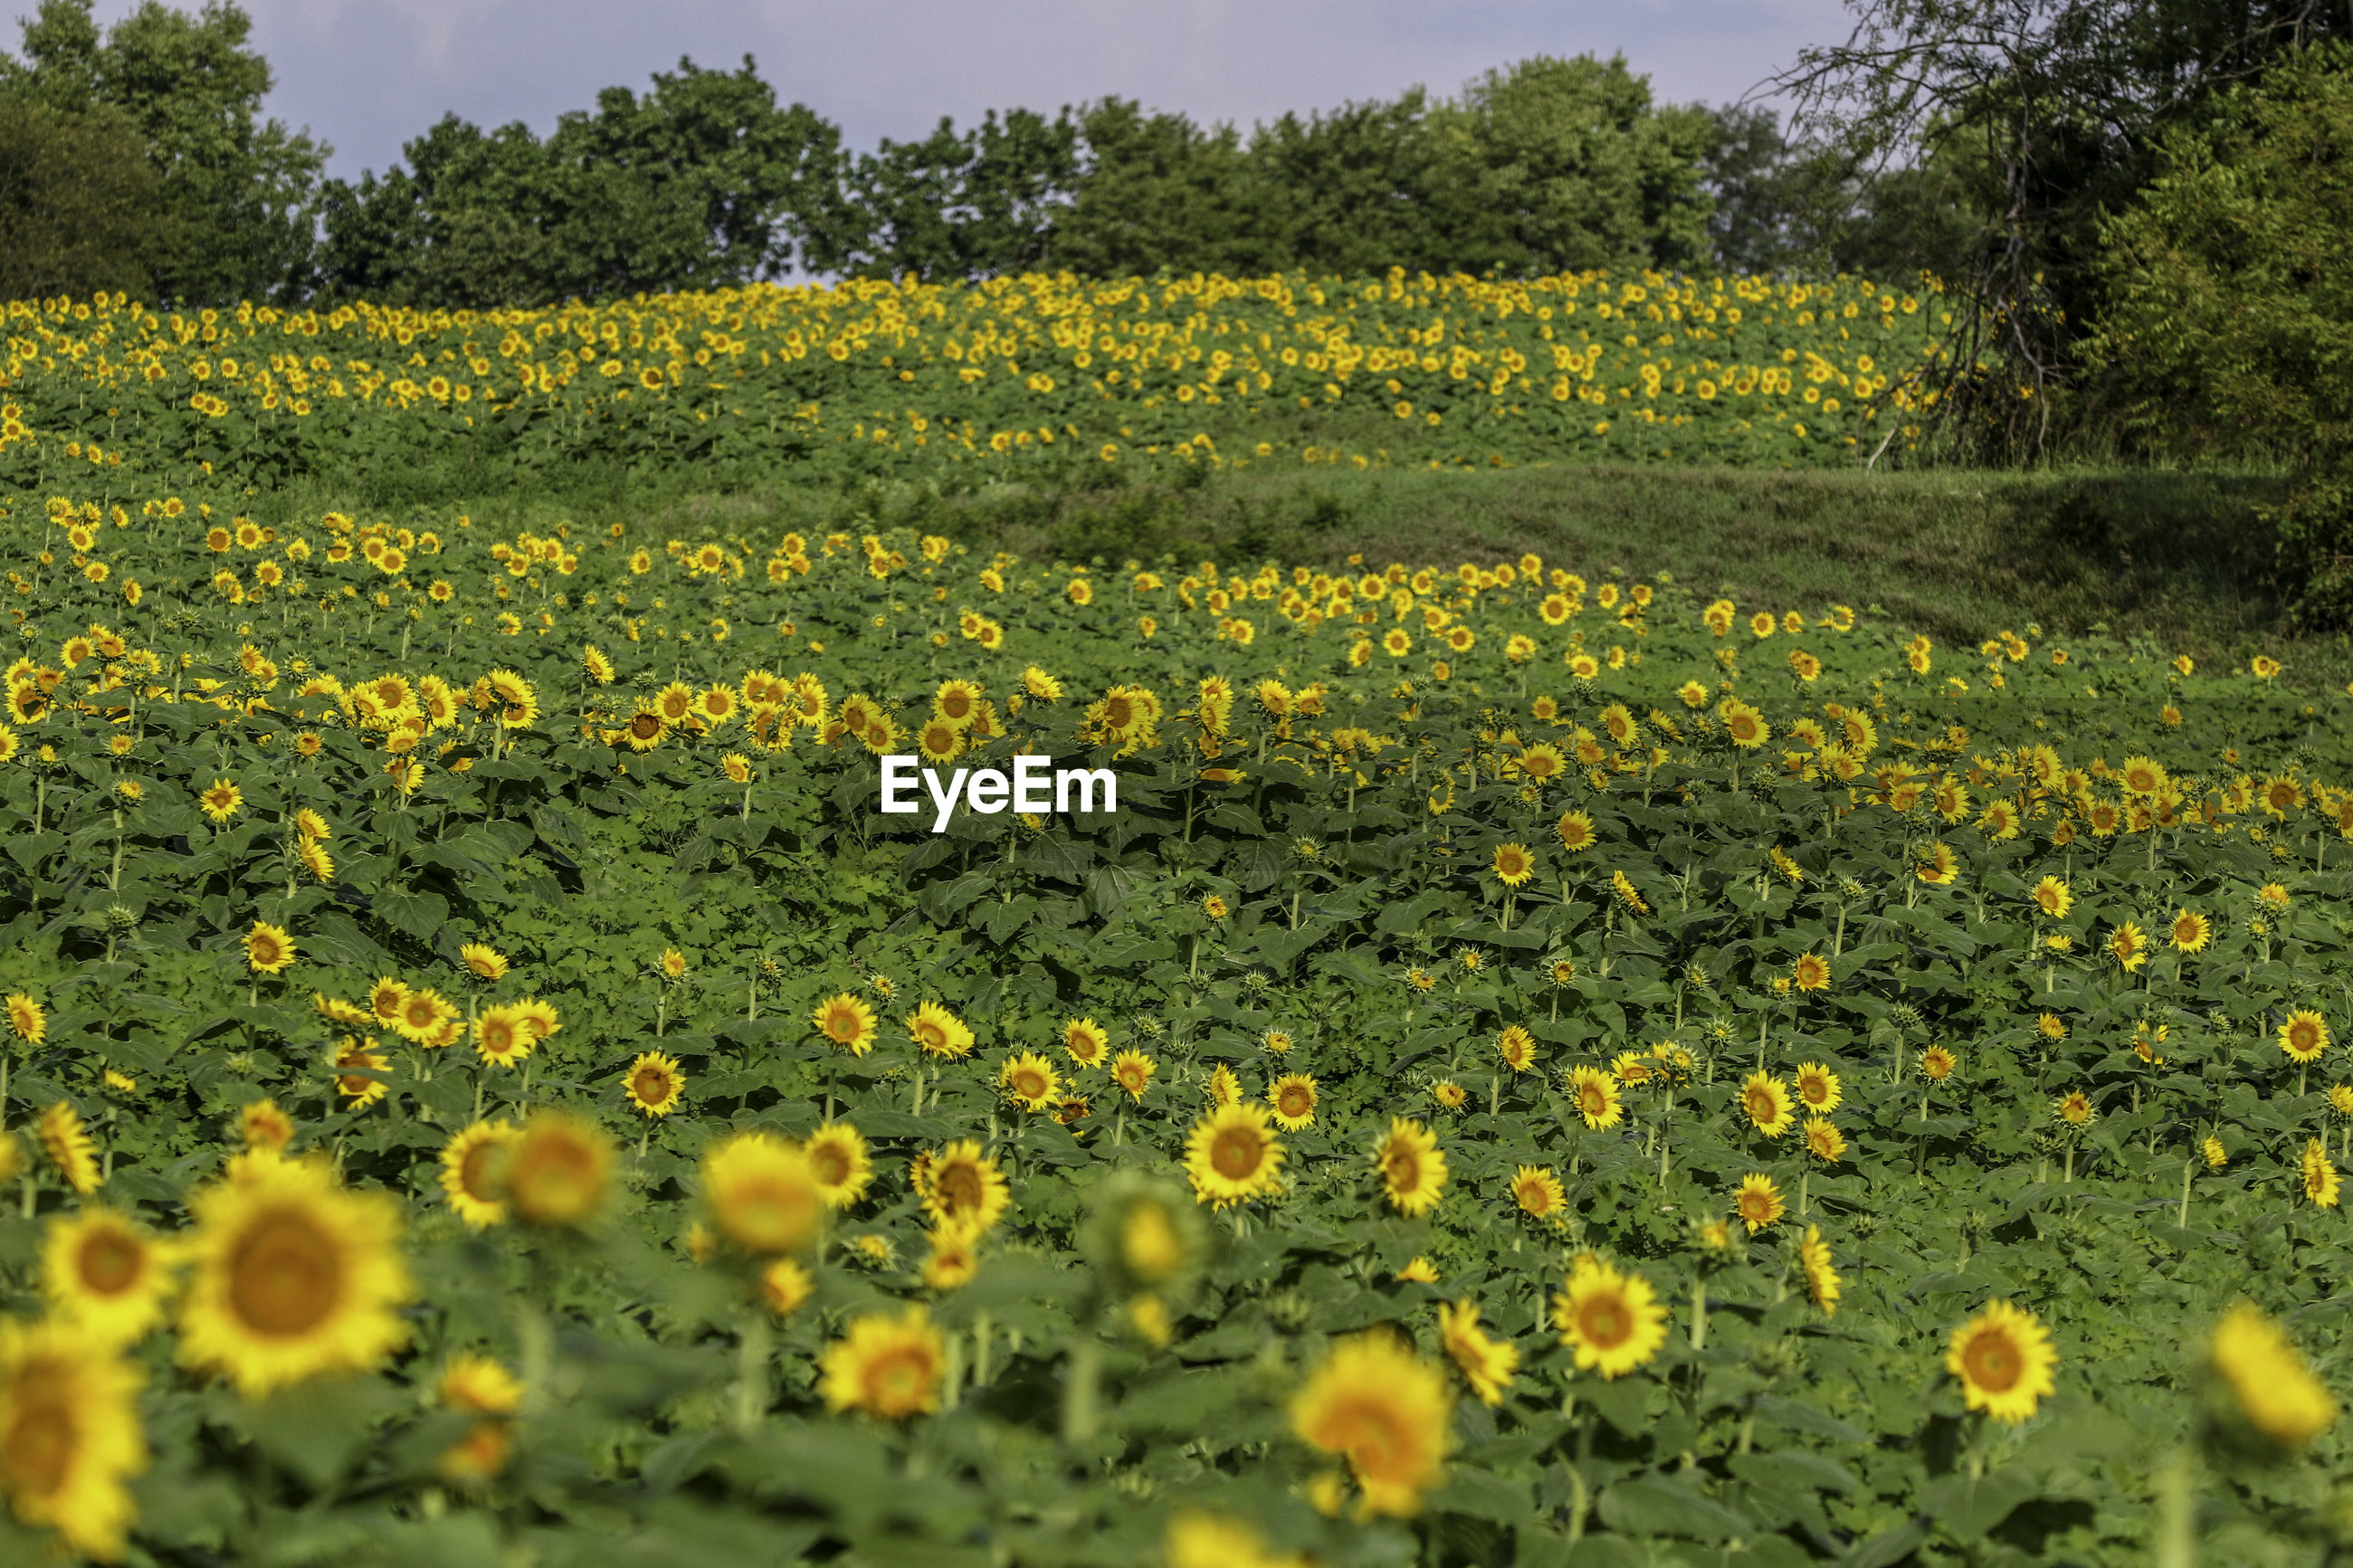 SCENIC VIEW OF YELLOW FLOWERING FIELD